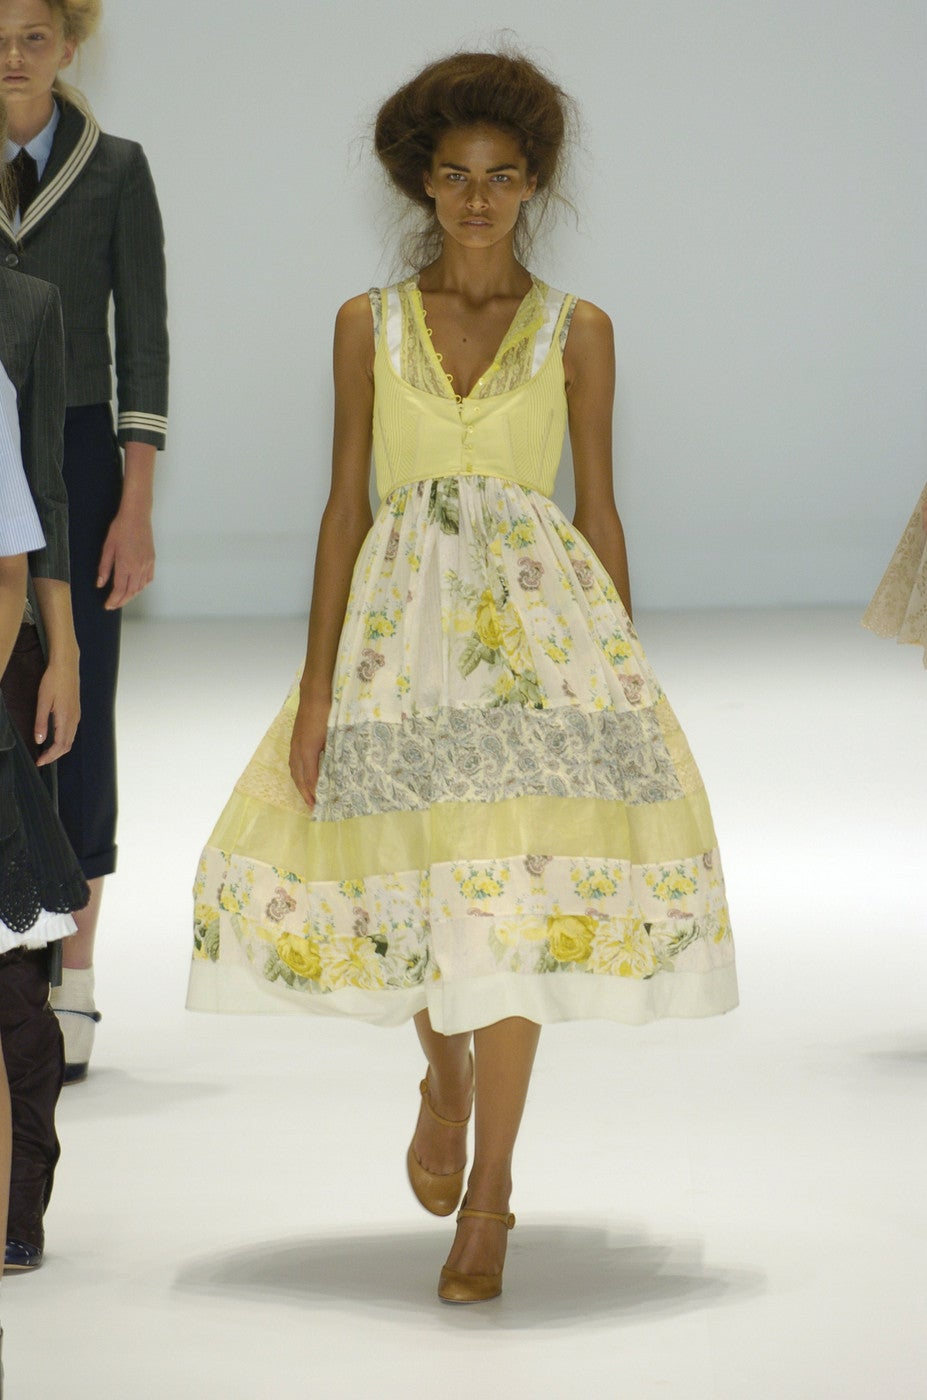 ALEXANDER MCQUEEN 'It Is Only A Game' runway dress - Spring 2005 For Sale 1